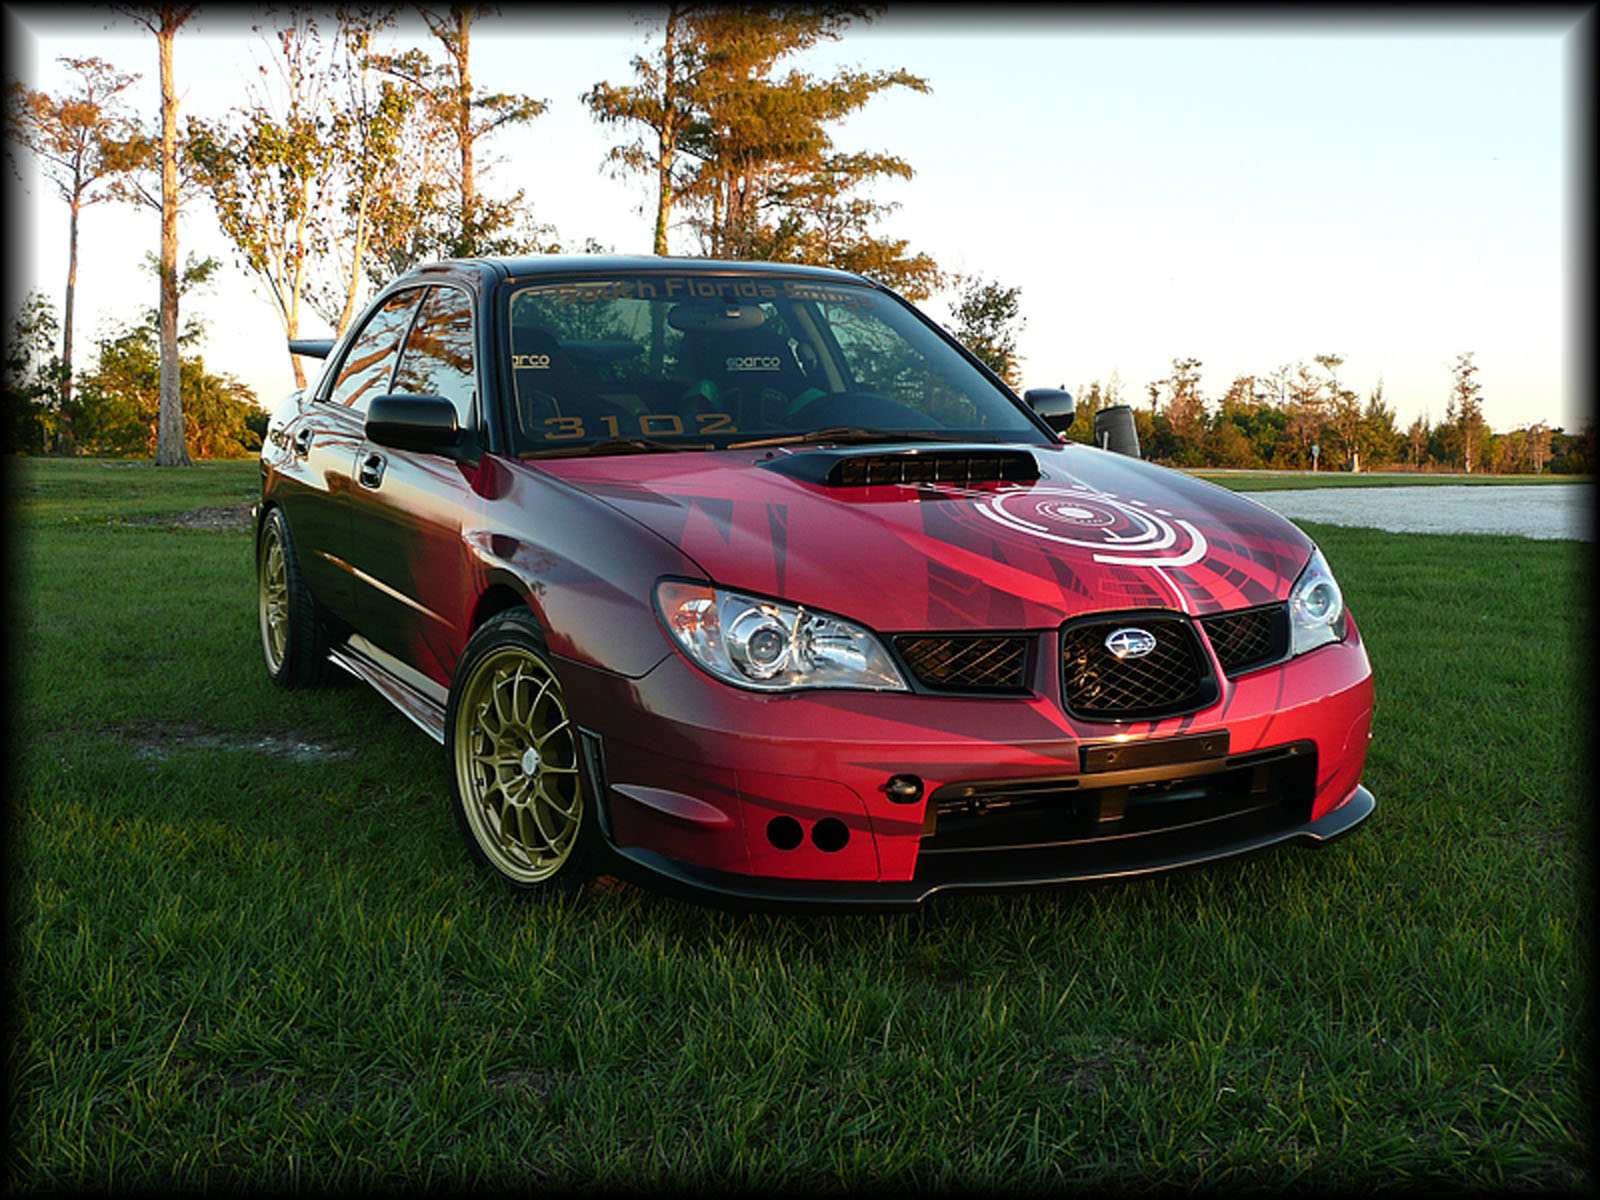 2006 subaru impreza wrx sti for sale delray beach florida. Black Bedroom Furniture Sets. Home Design Ideas